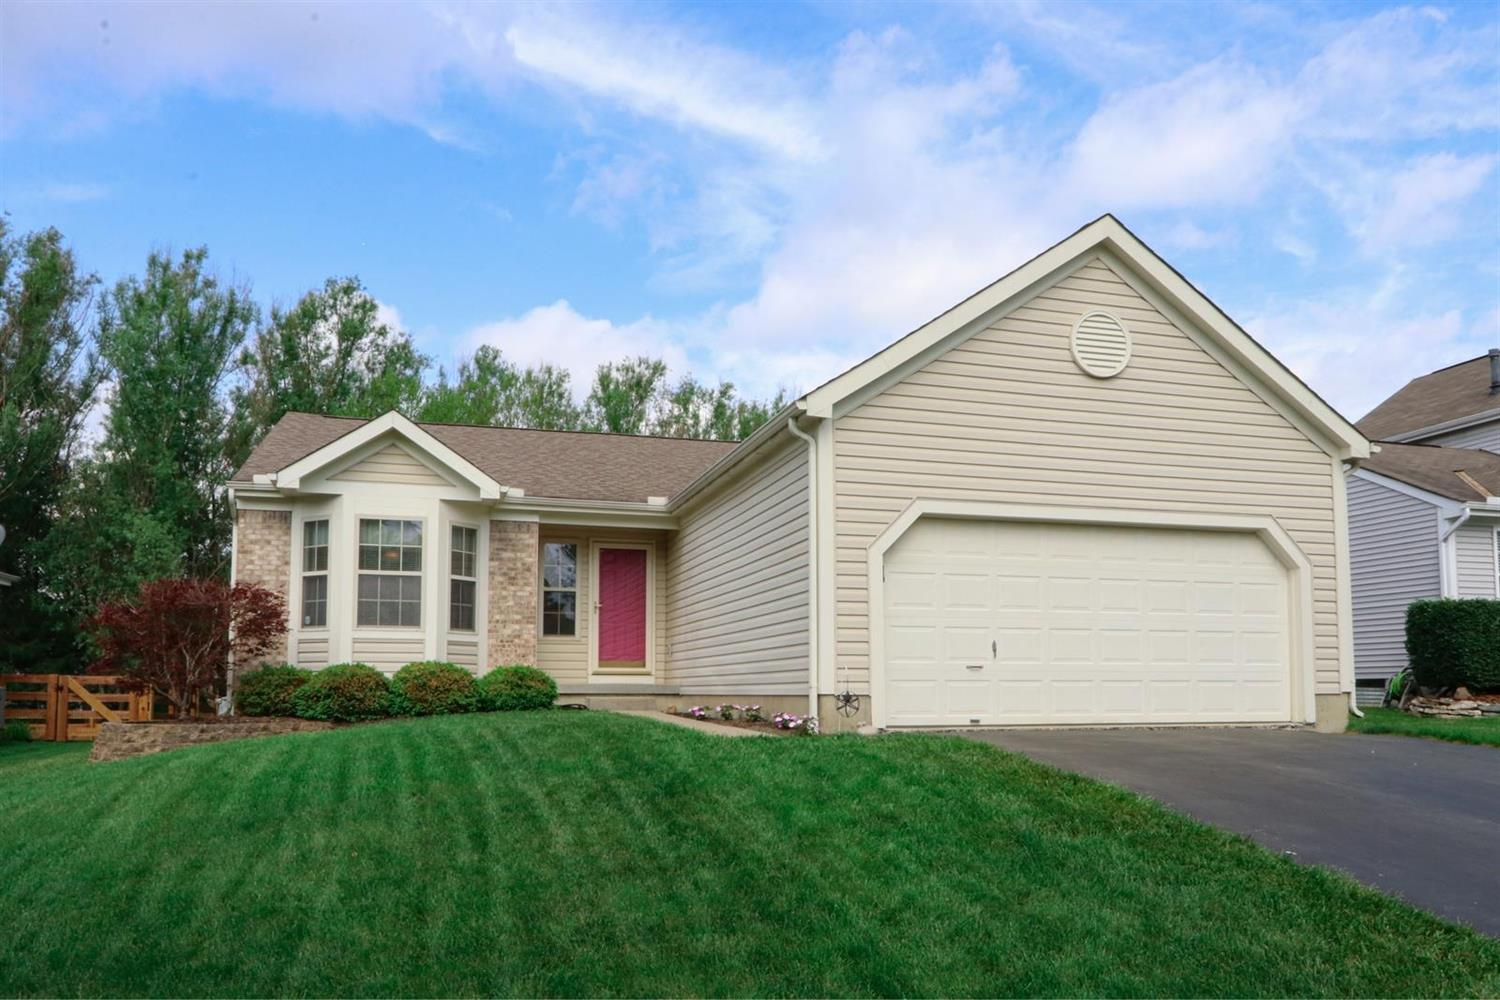 Property for sale at 587 Weeping Willow Lane, Hamilton Twp,  Ohio 45039